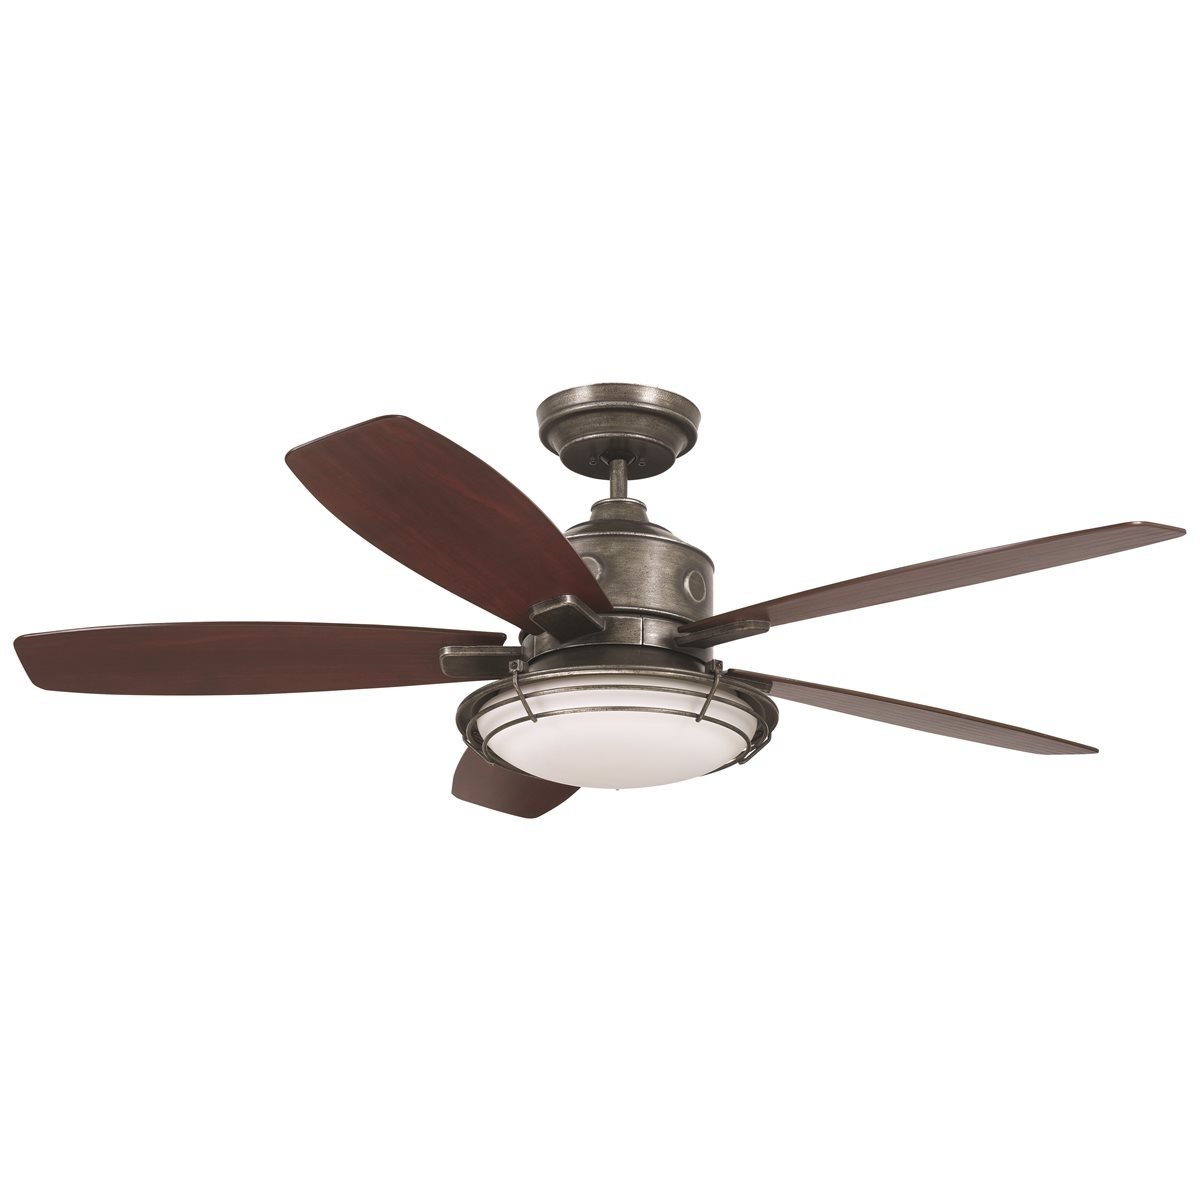 Newest Emerson Outdoor Ceiling Fans With Lights Within Emerson Rockpointe Outdoor Ceiling Fan – Vintage Steel One Each (View 14 of 20)